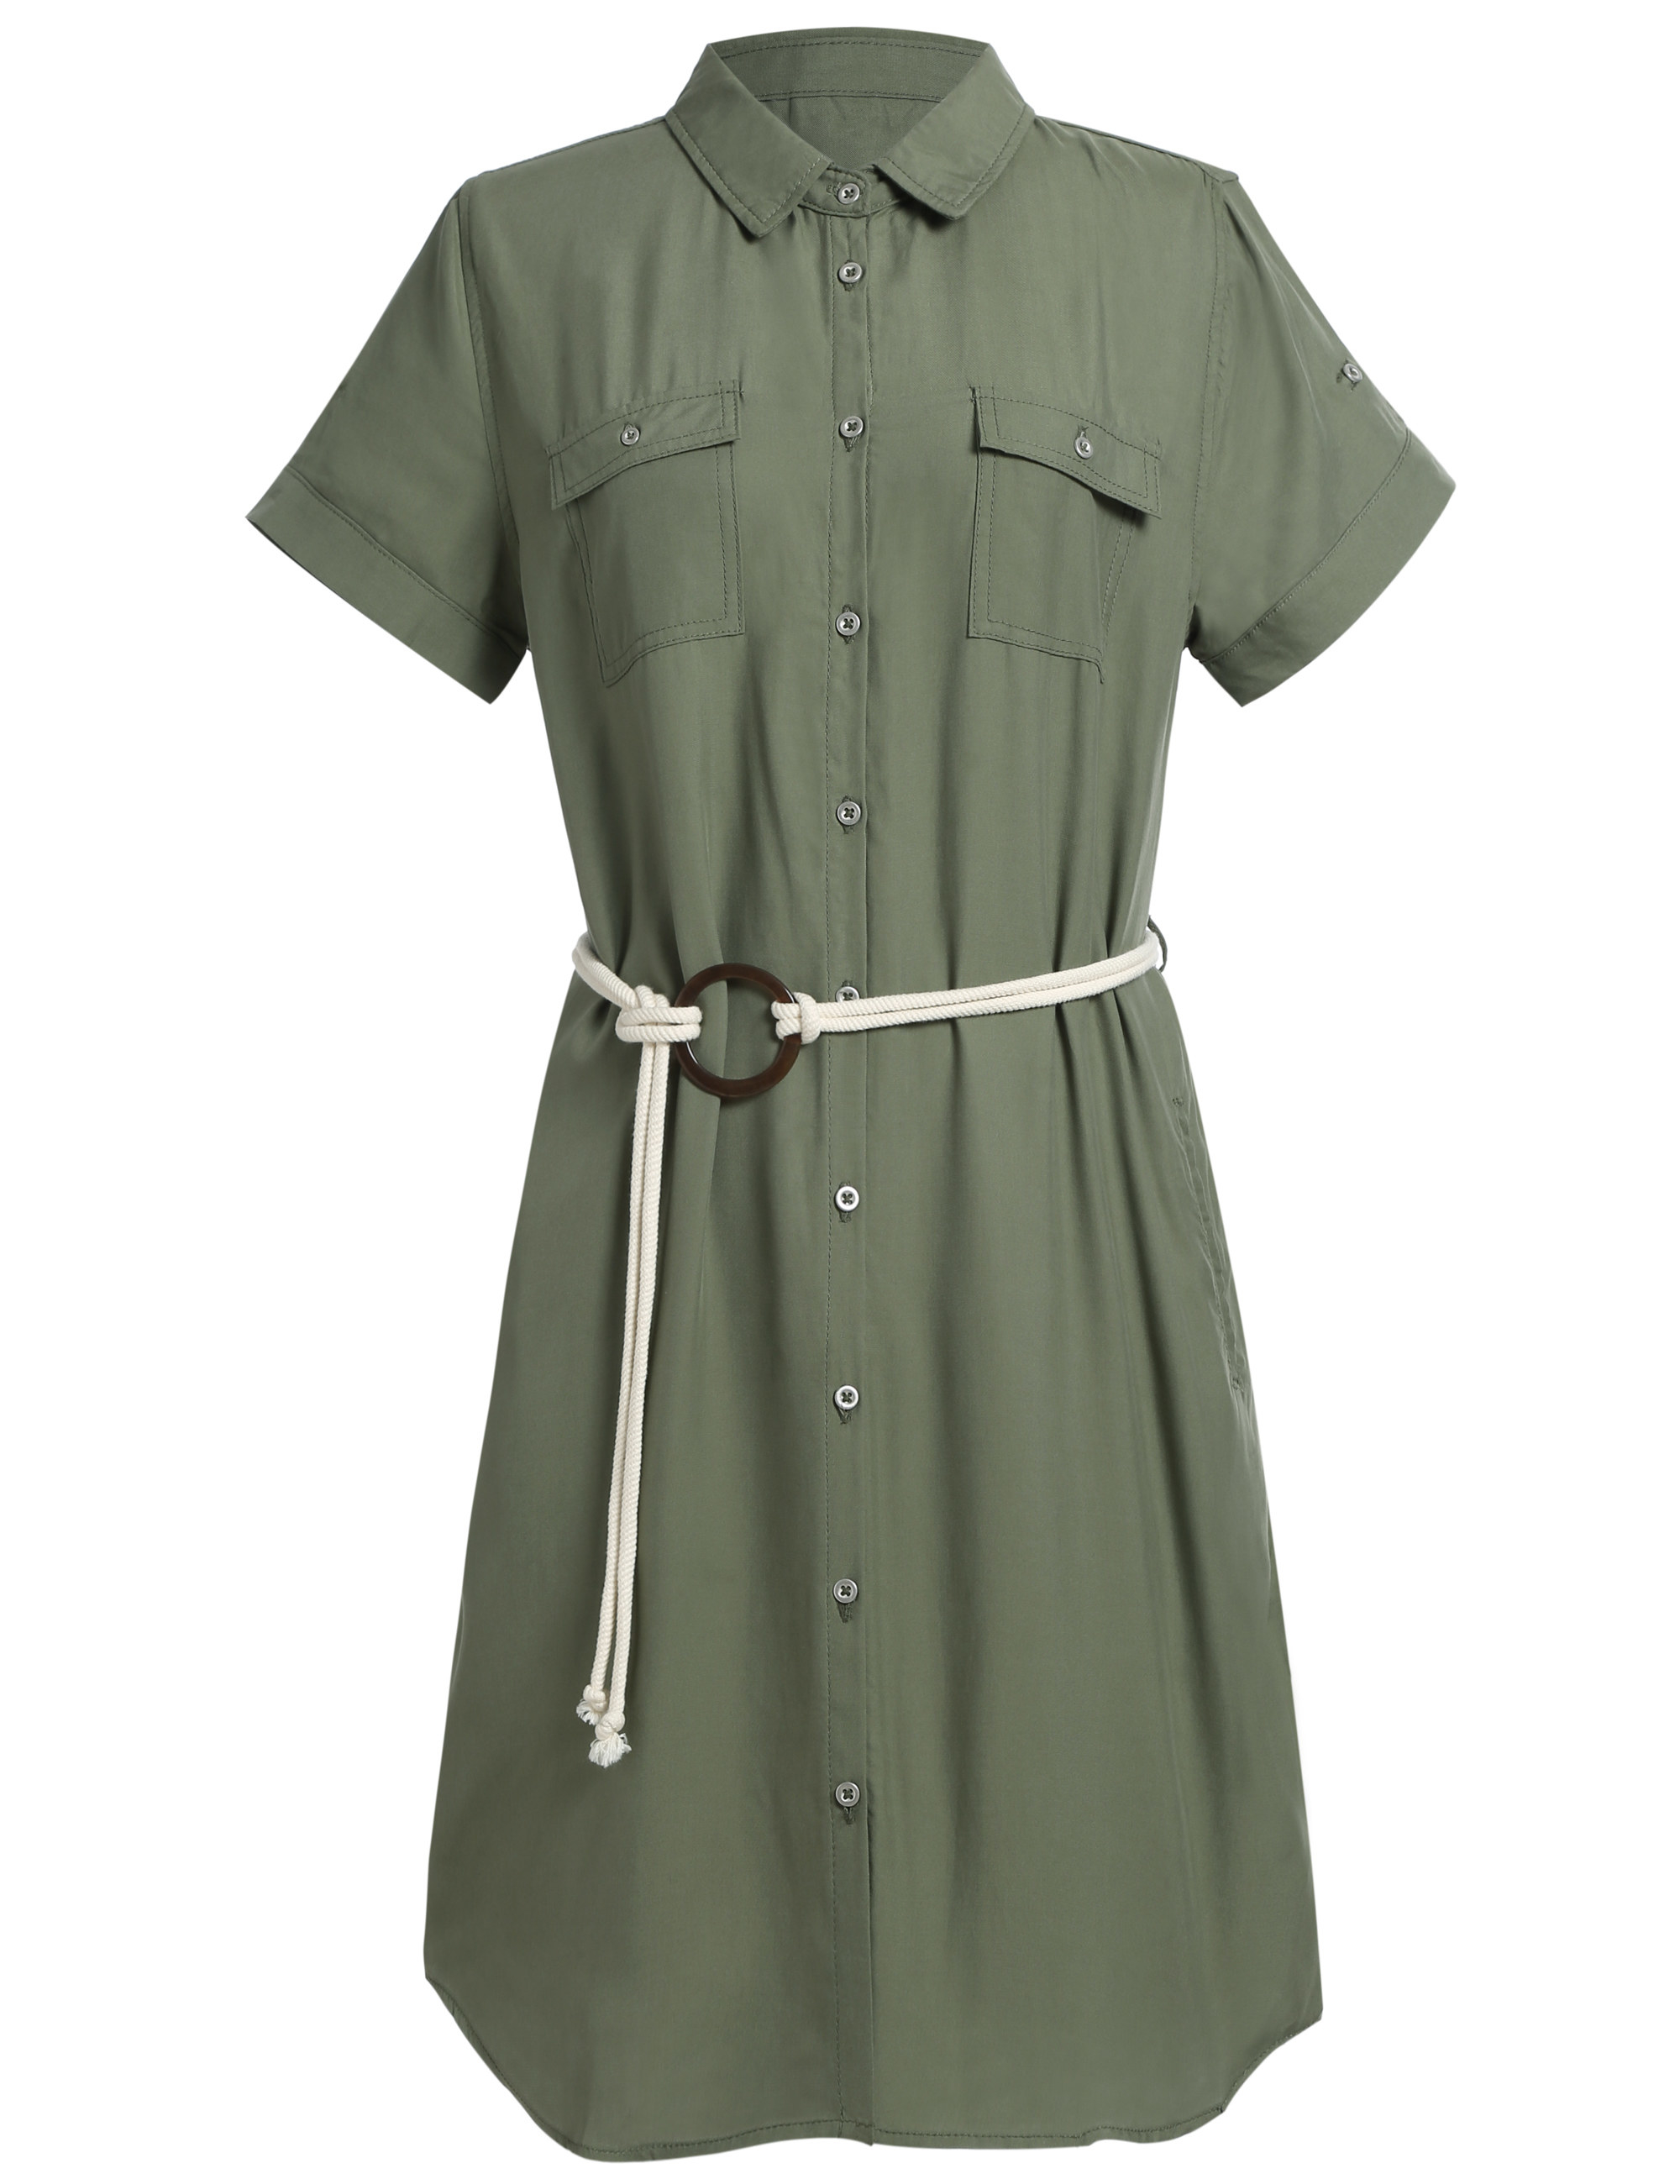 the t-shirt dress with buttons all the way down in olive green